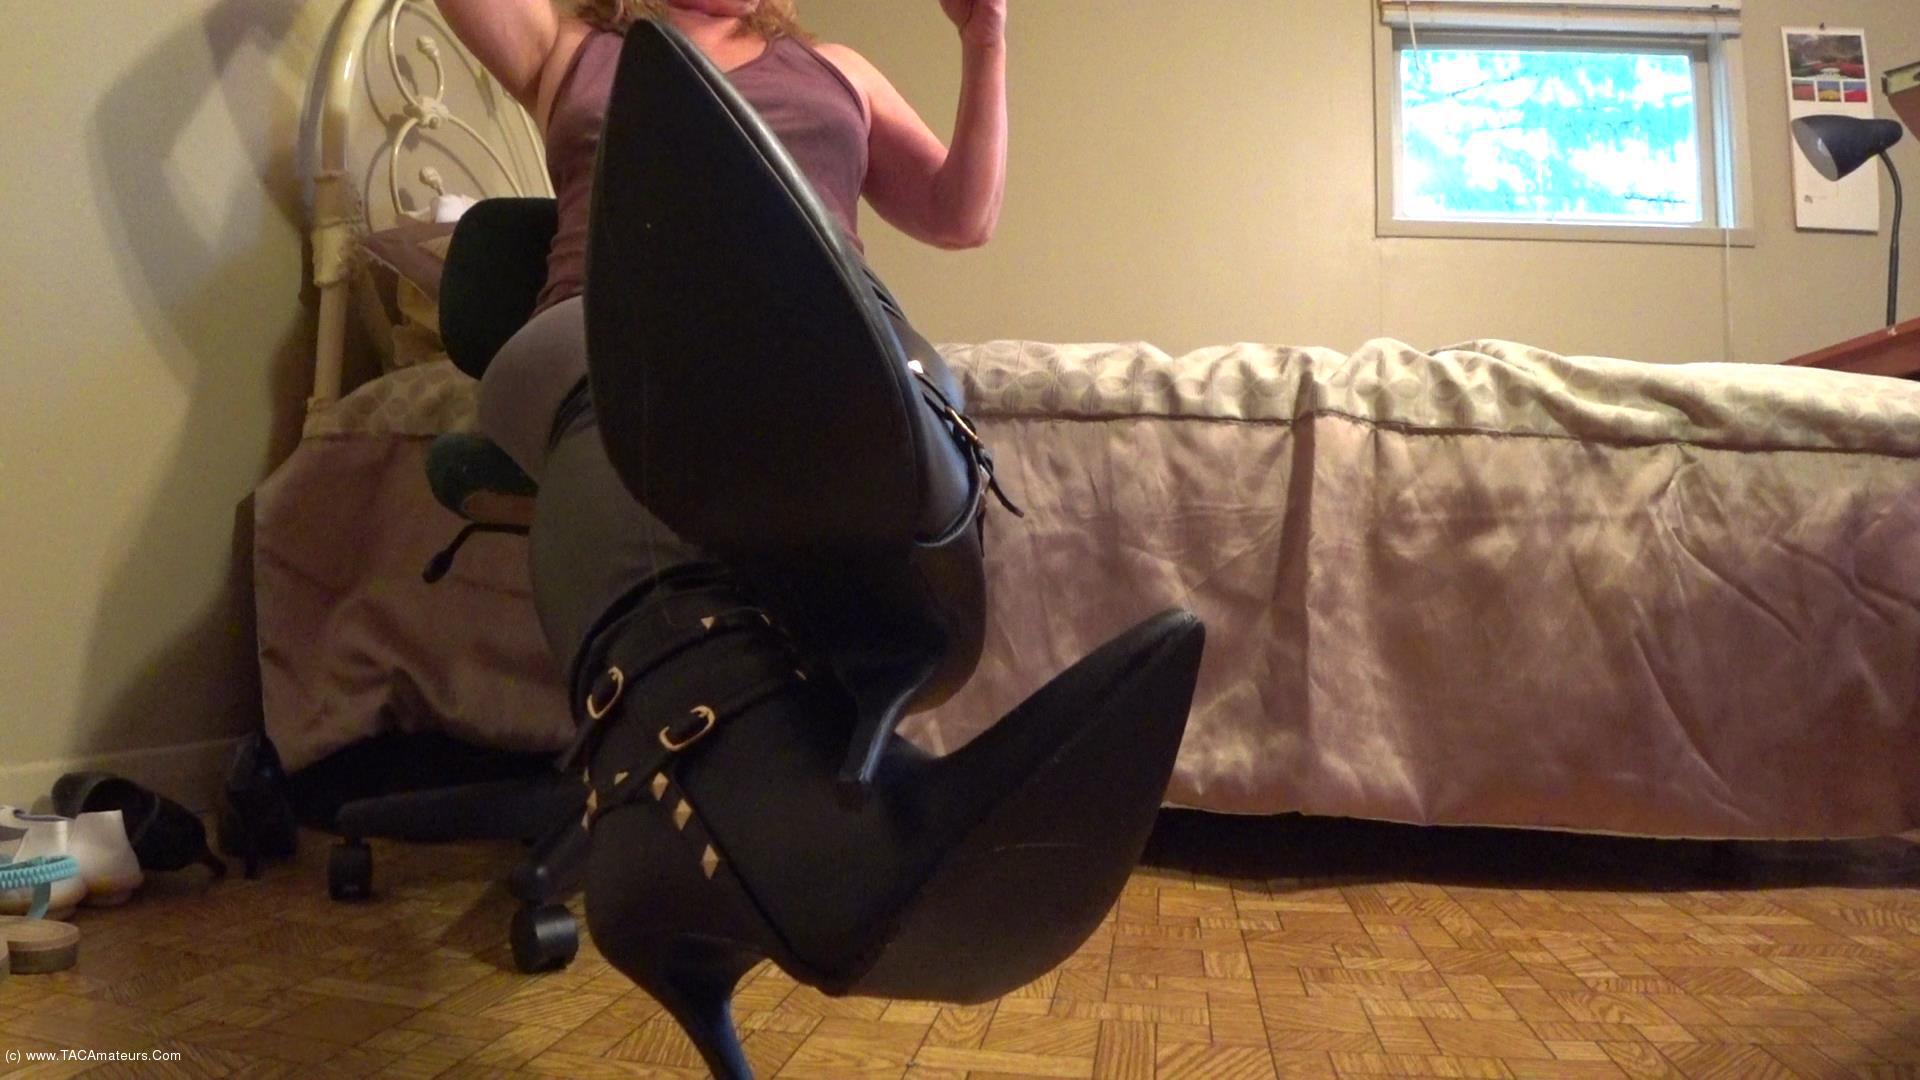 CougarBabeJolee - On Your Knees Bow & Serve My Sexy Leather Boots scene 1